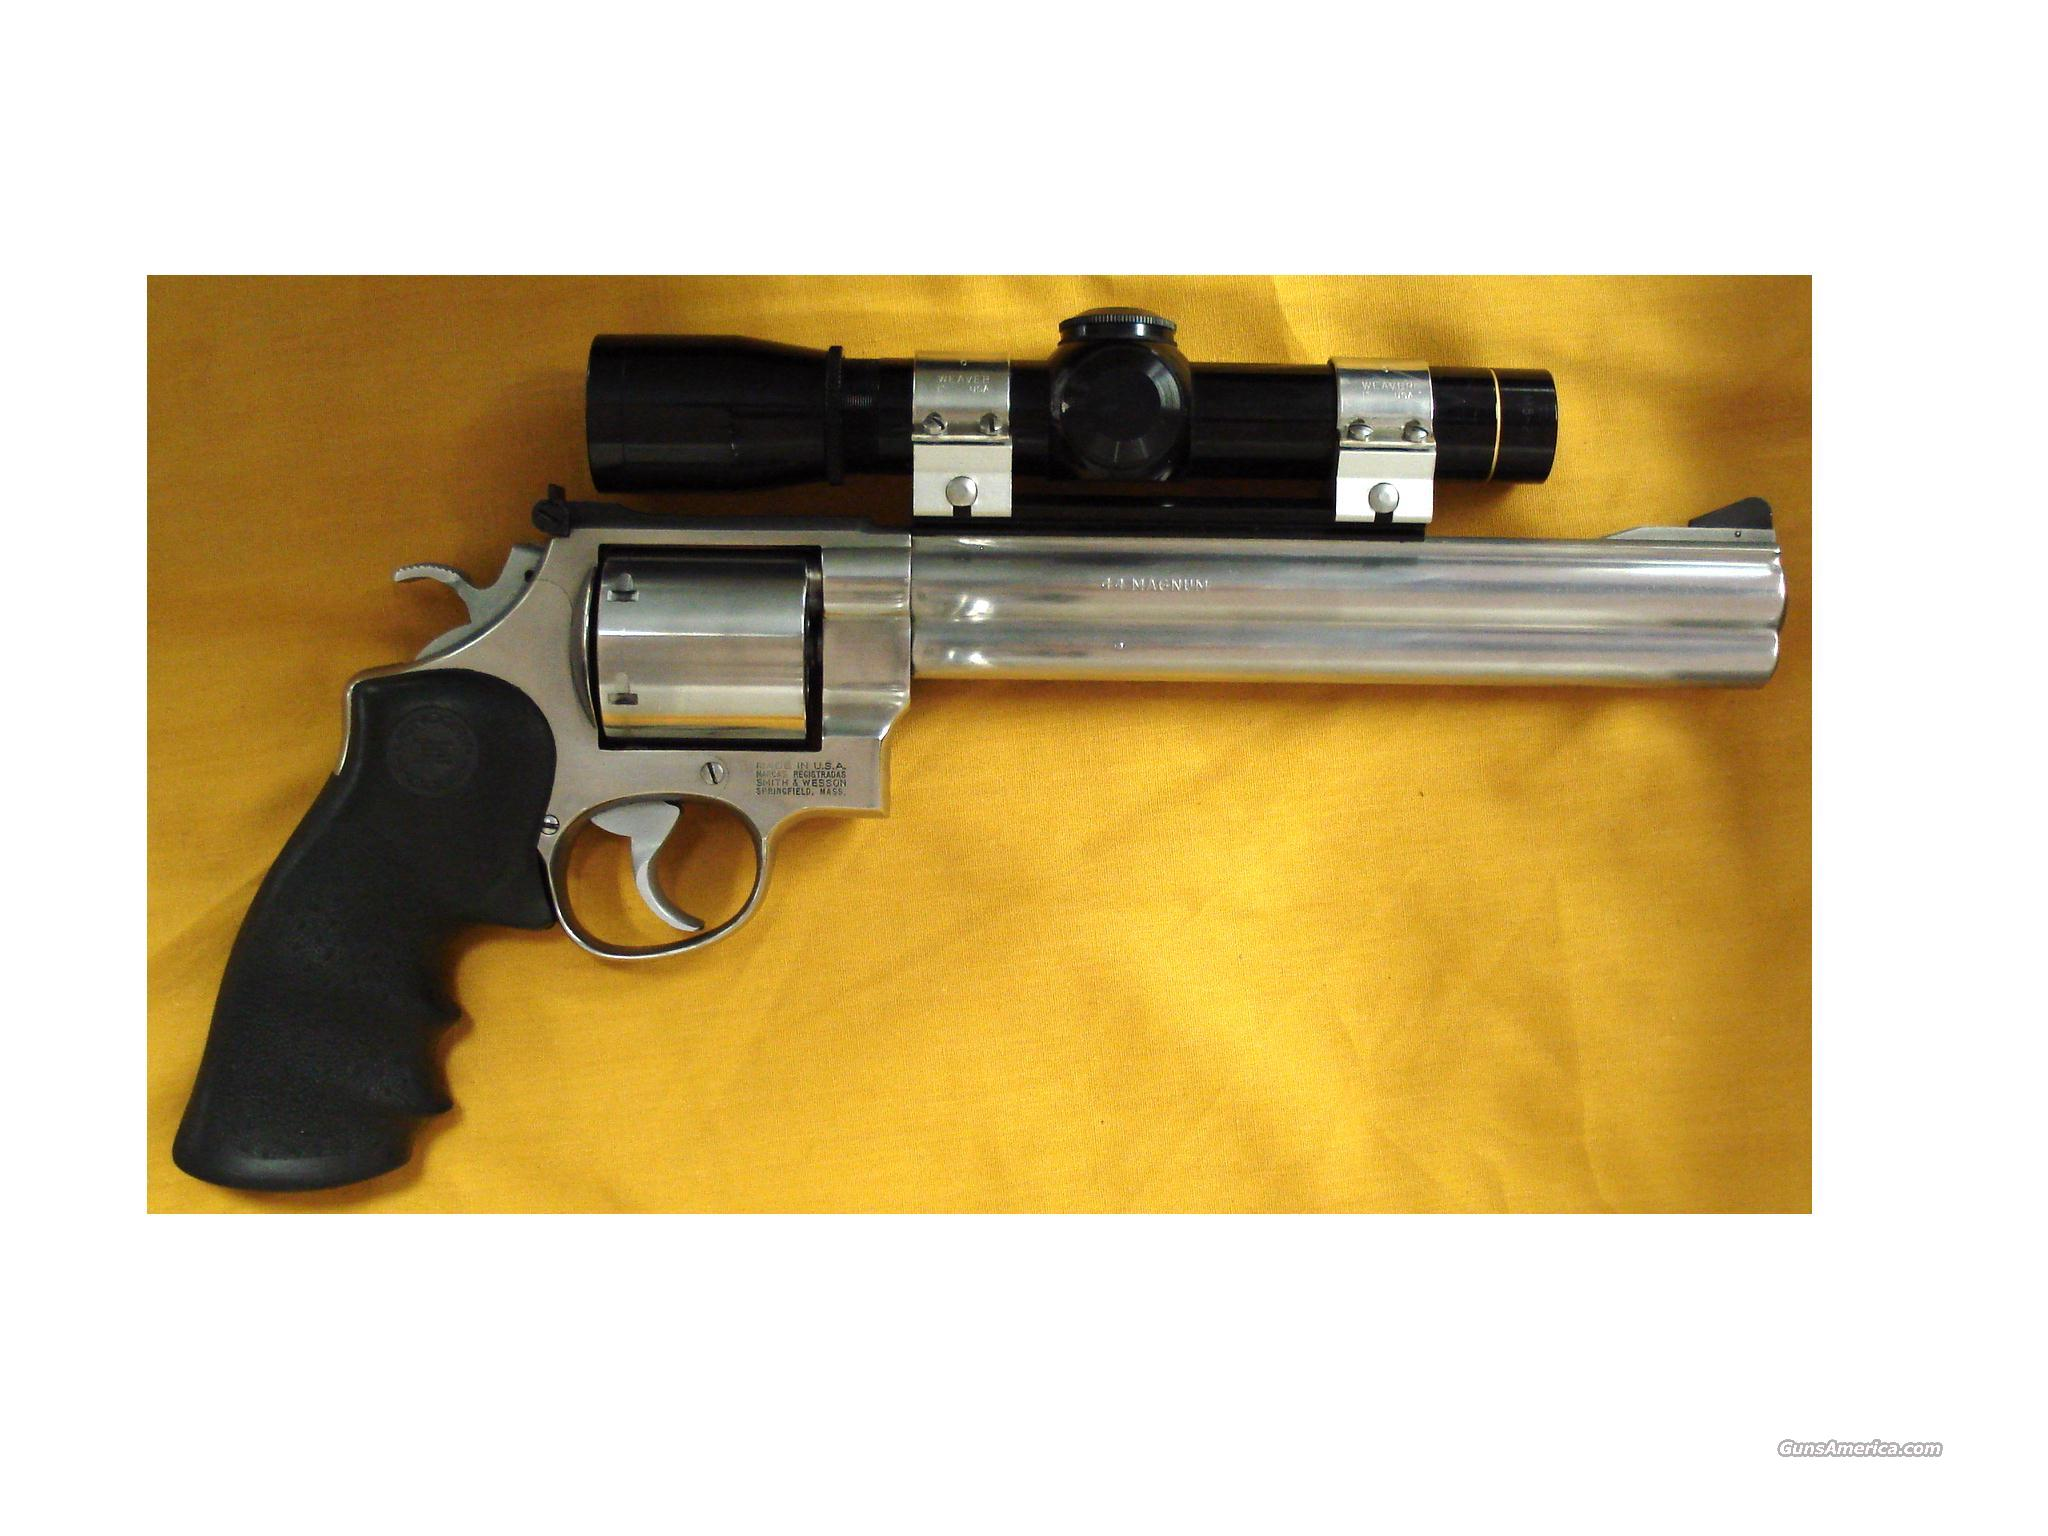 "S&W 629-2 .44MAG 8 1/4""BBL W/ LEUPOLD  Guns > Pistols > Smith & Wesson Revolvers > Model 629"